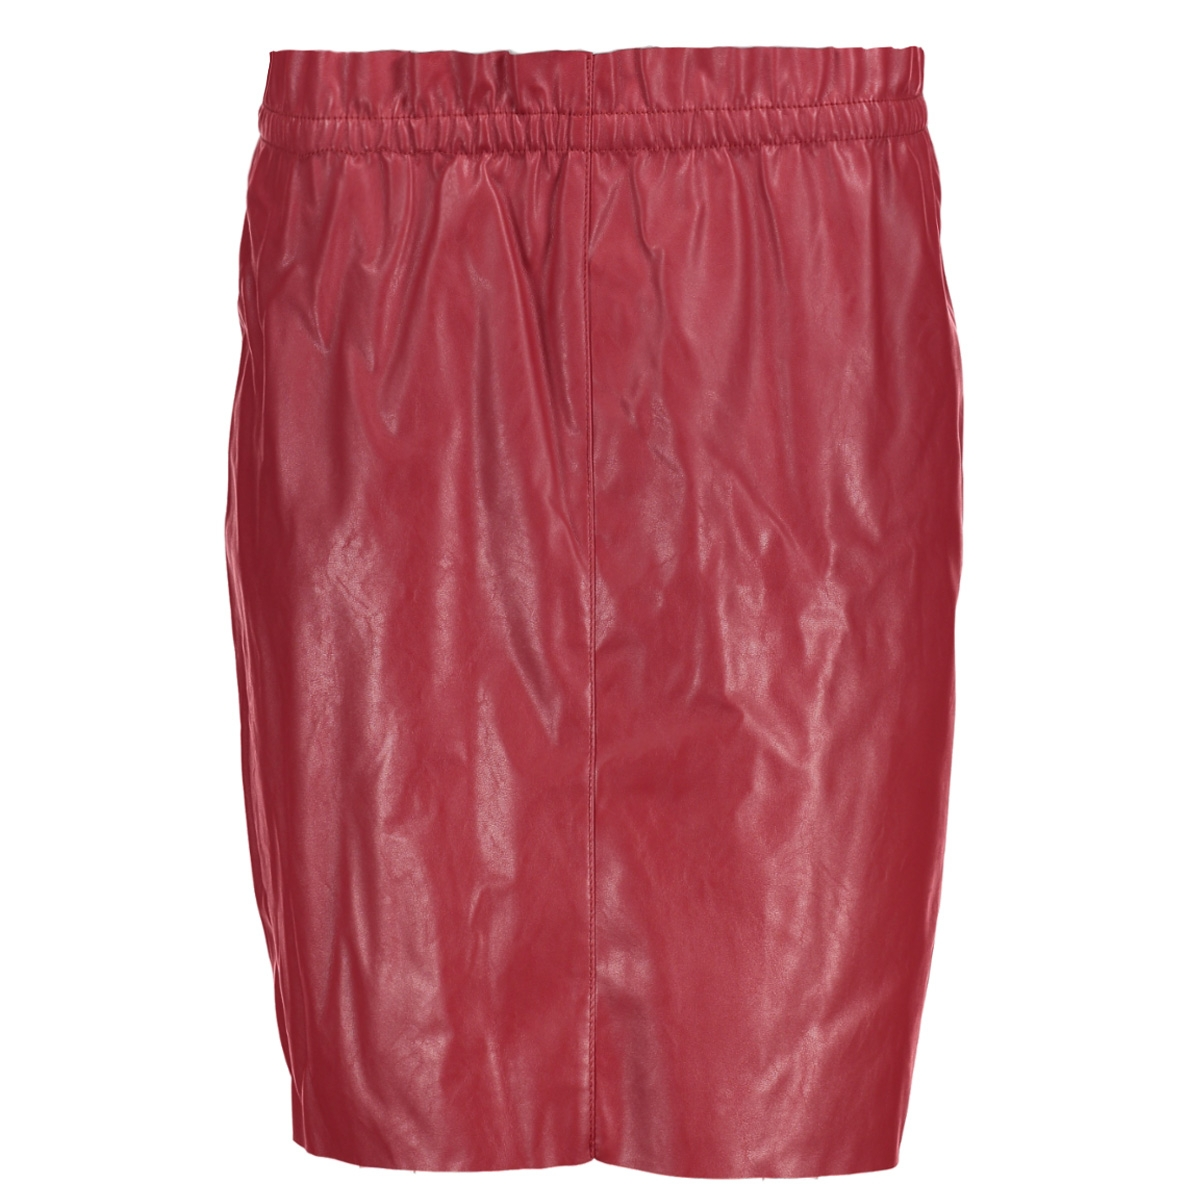 vmfame hw above knee faux leather s  10188796 vero moda rok lychee